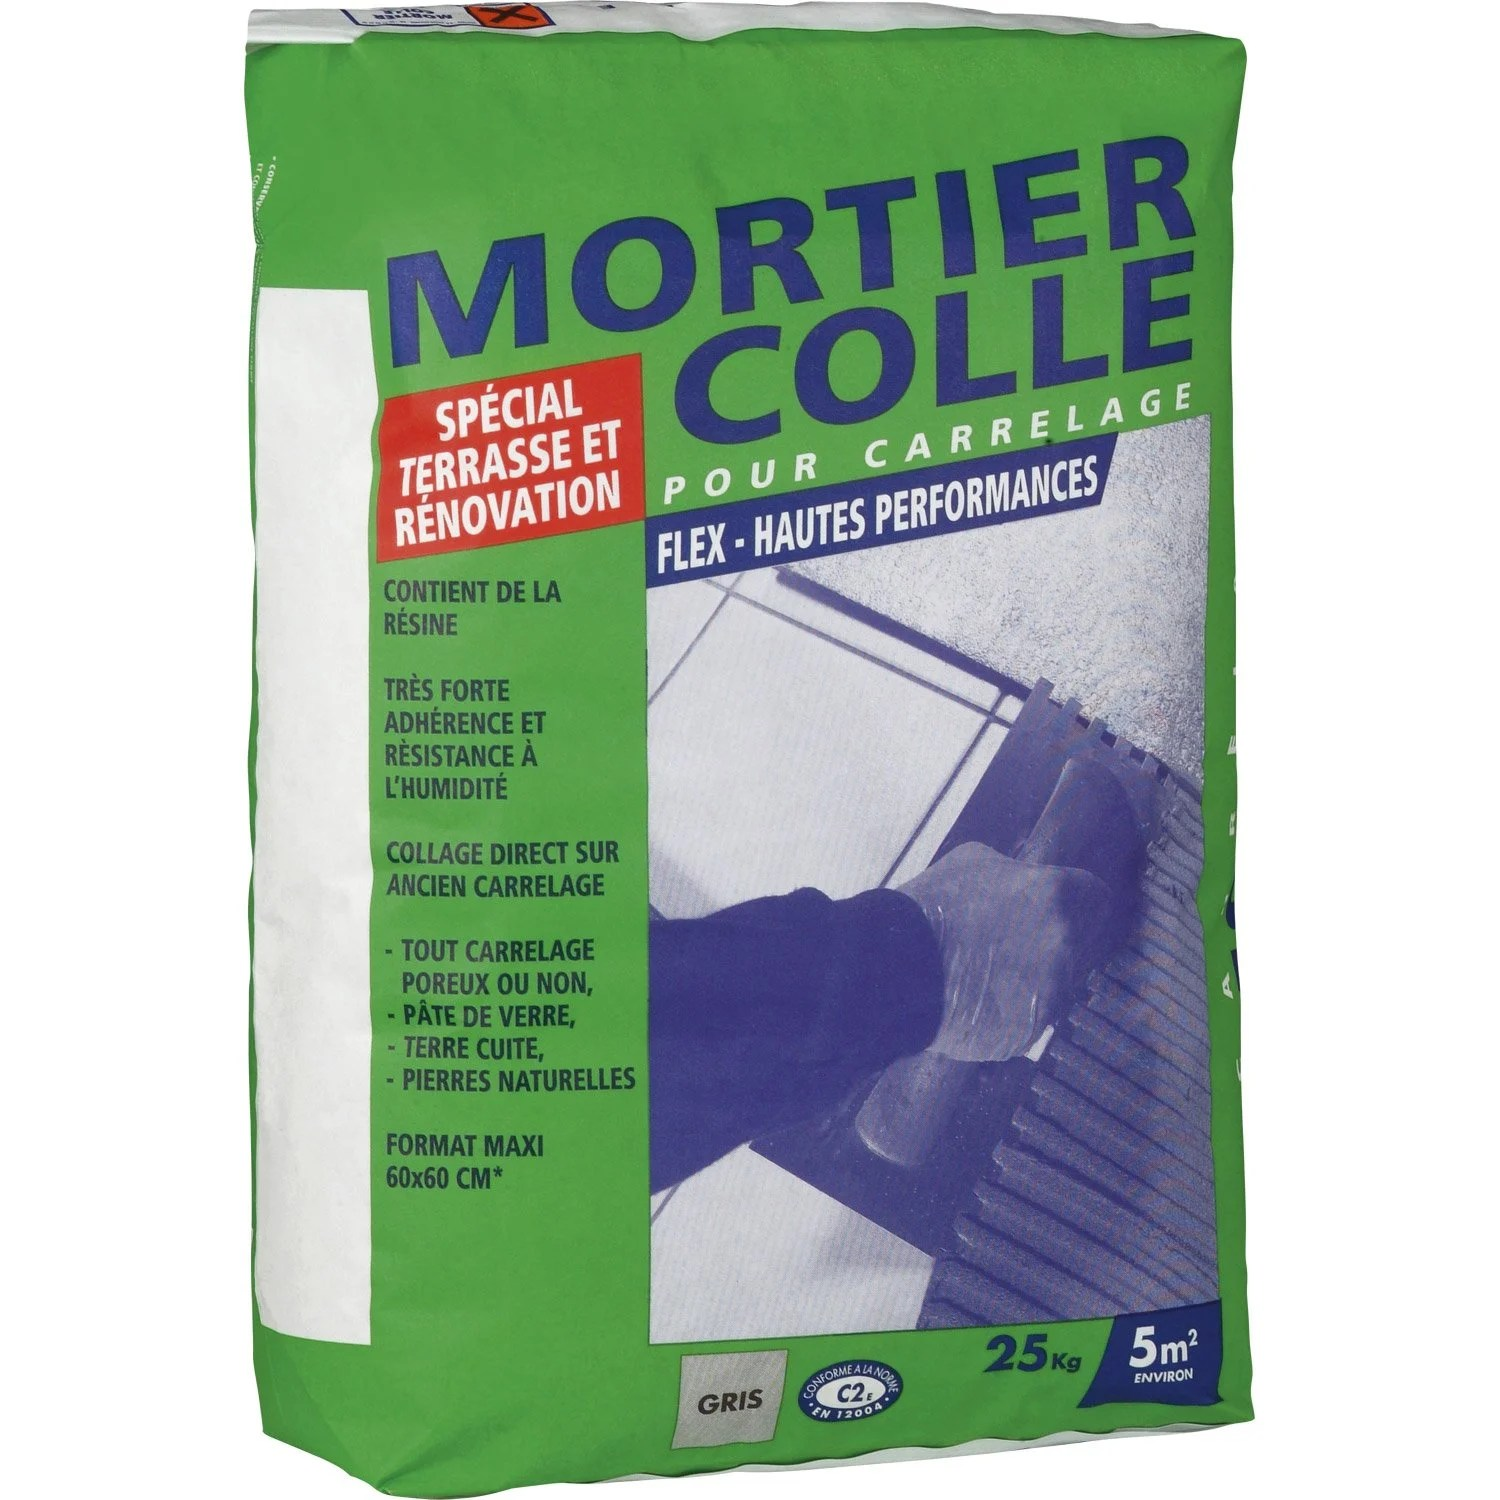 Mortier Colle Carrelage Exterieur Point P Mortier Colle Flex Gris 25 Kg Leroy Merlin